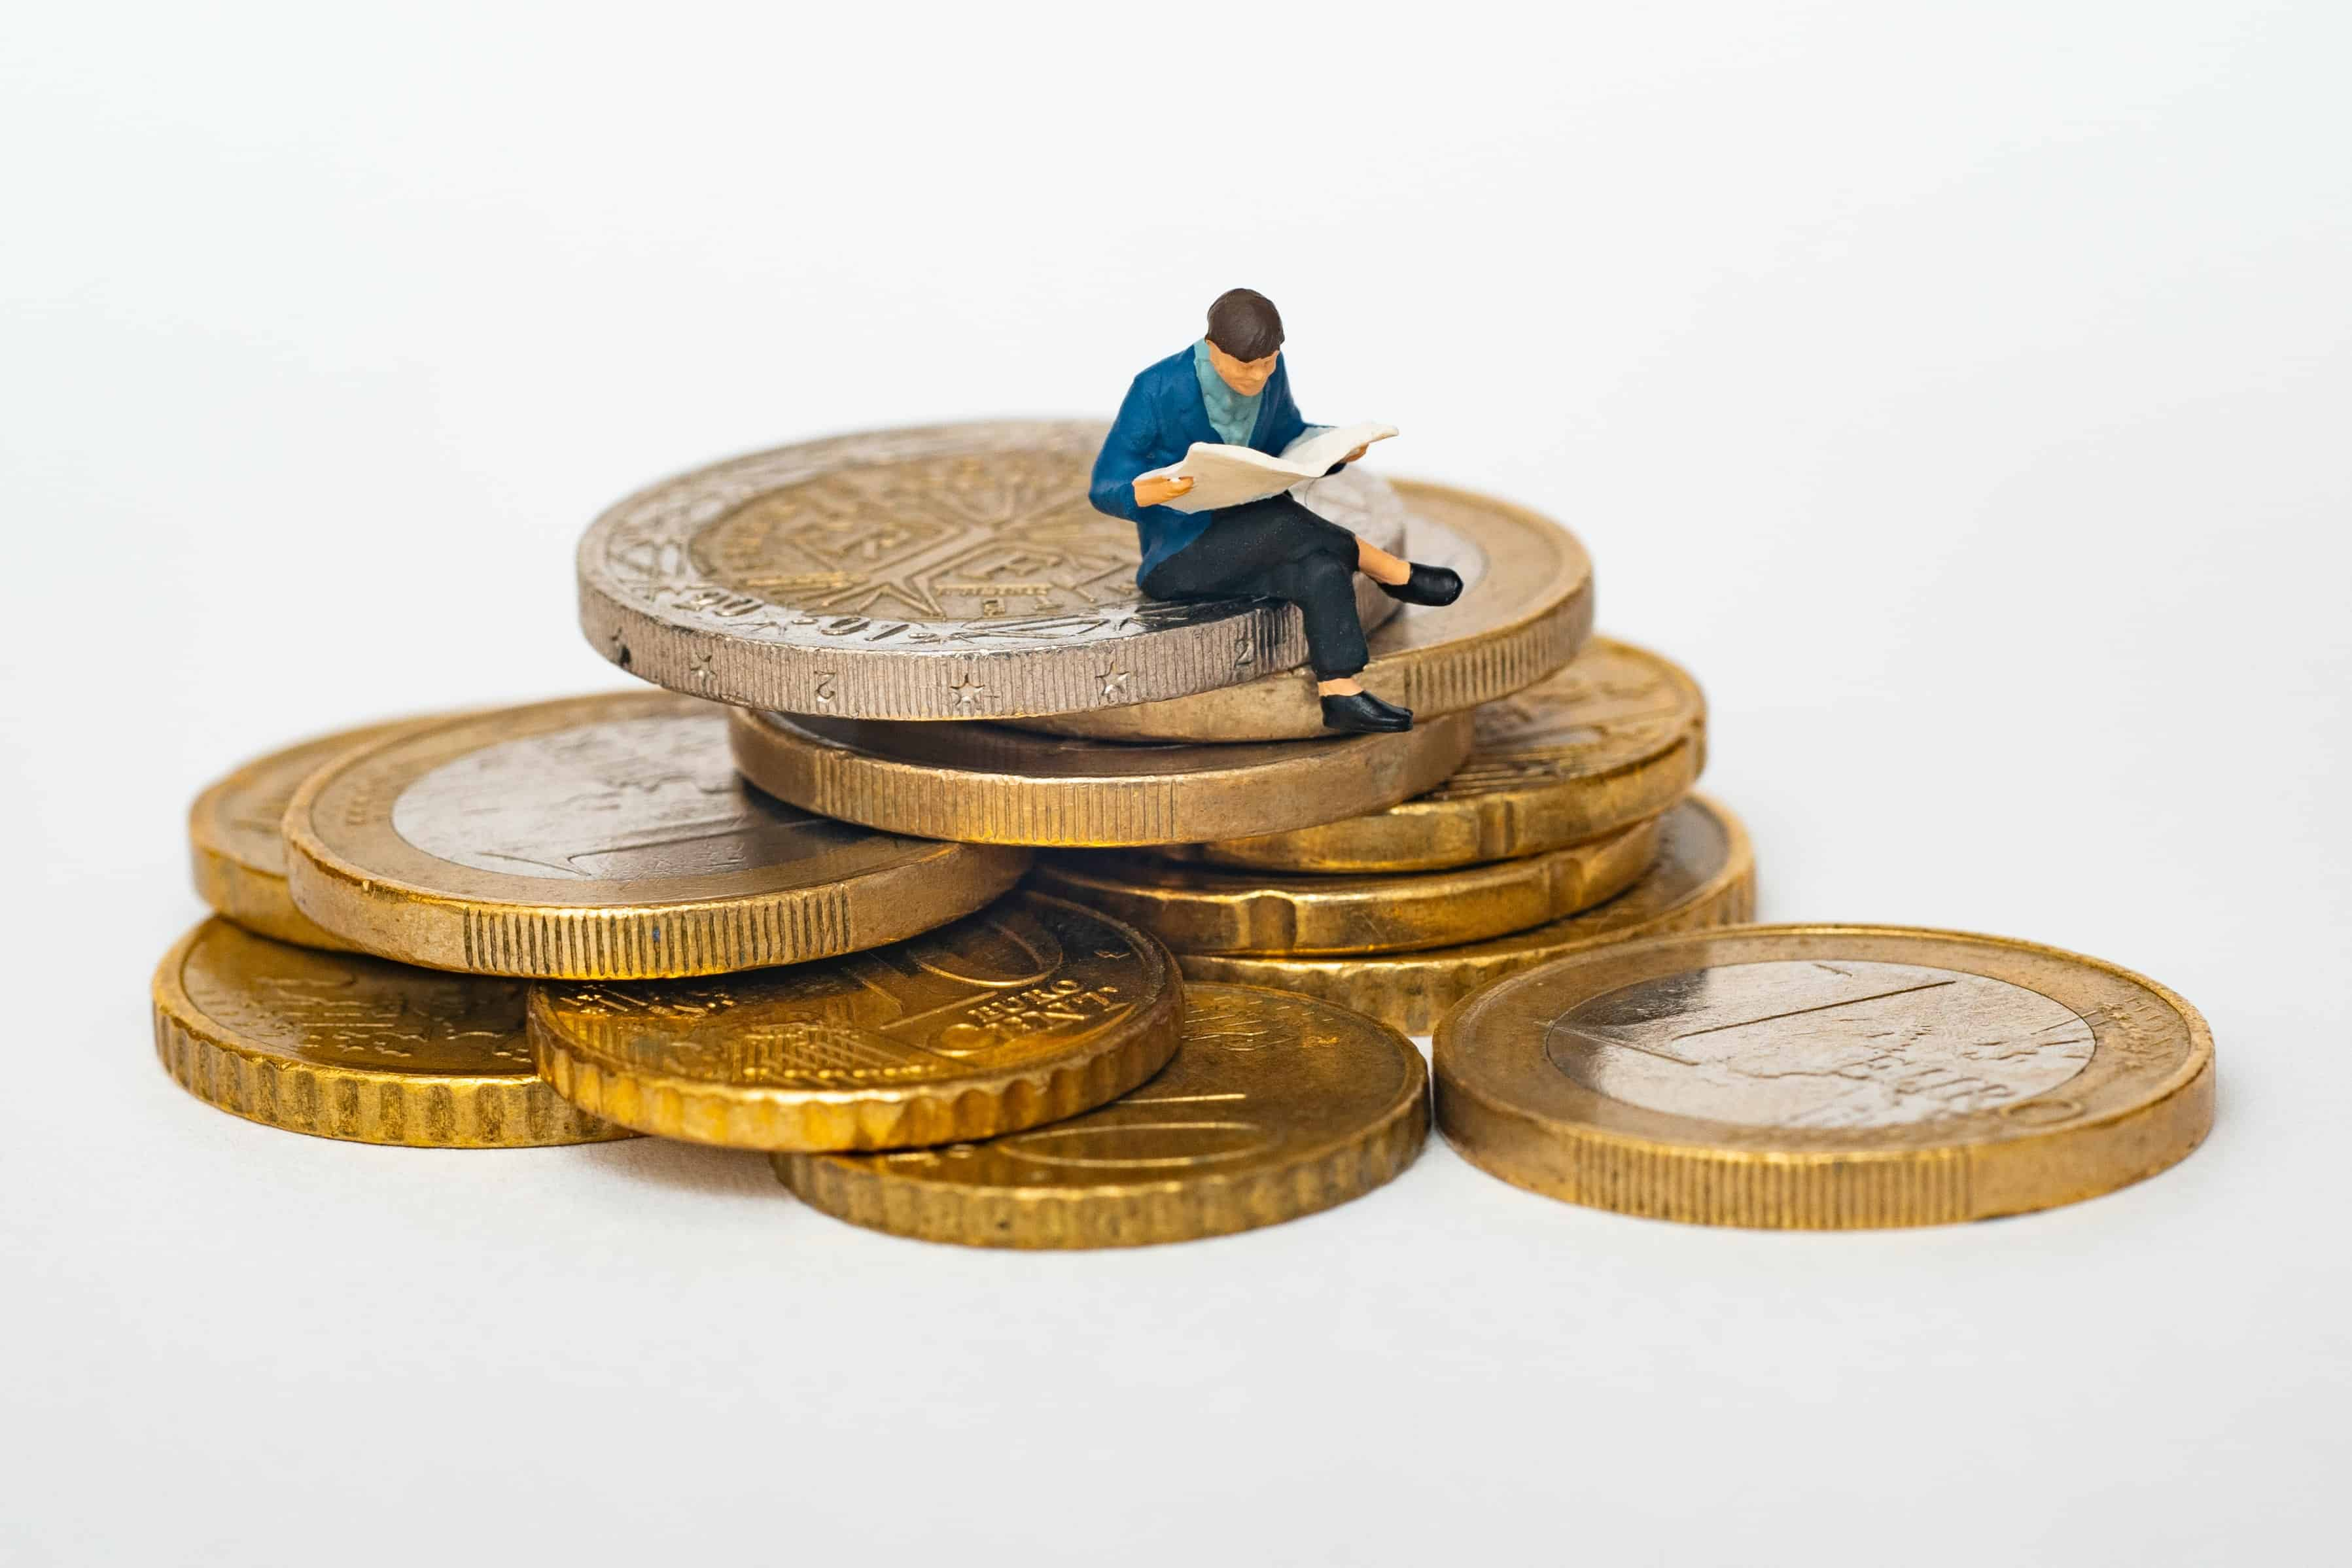 significance of setting aside cash